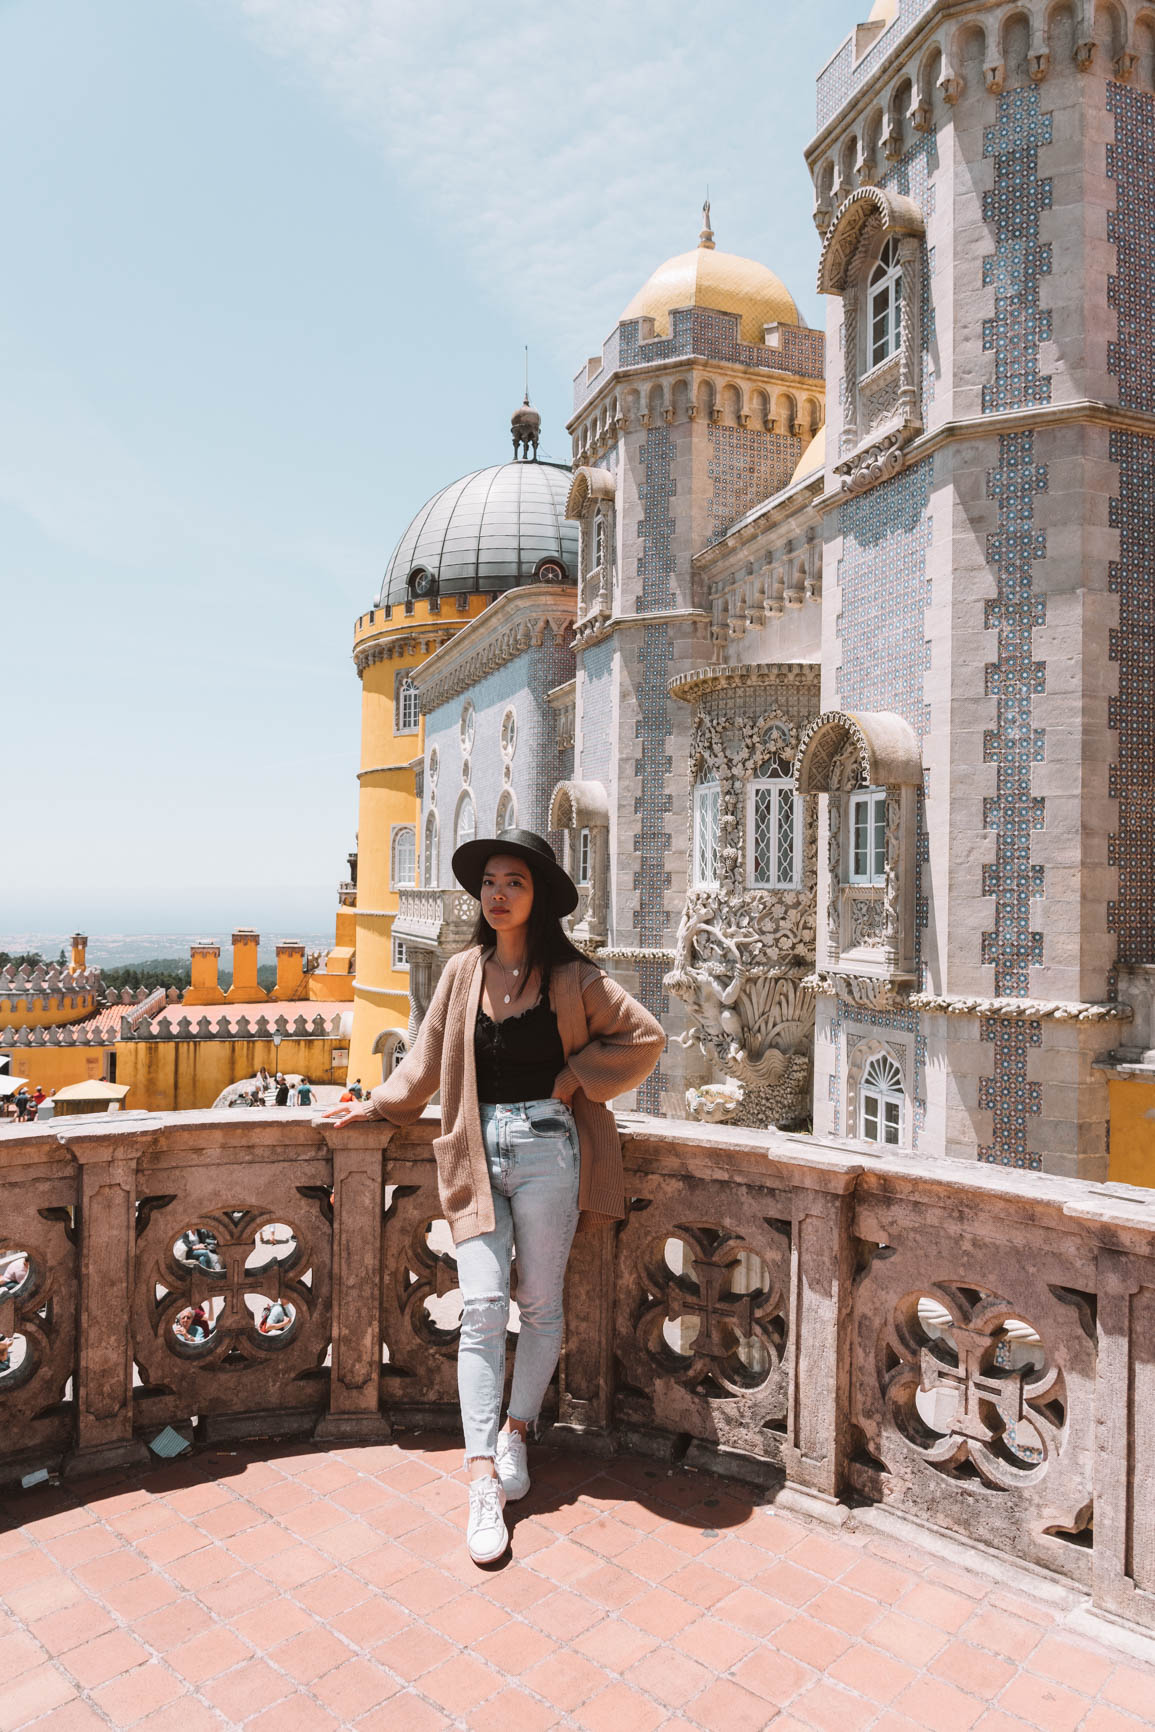 10 days exploring Portugal on a road trip